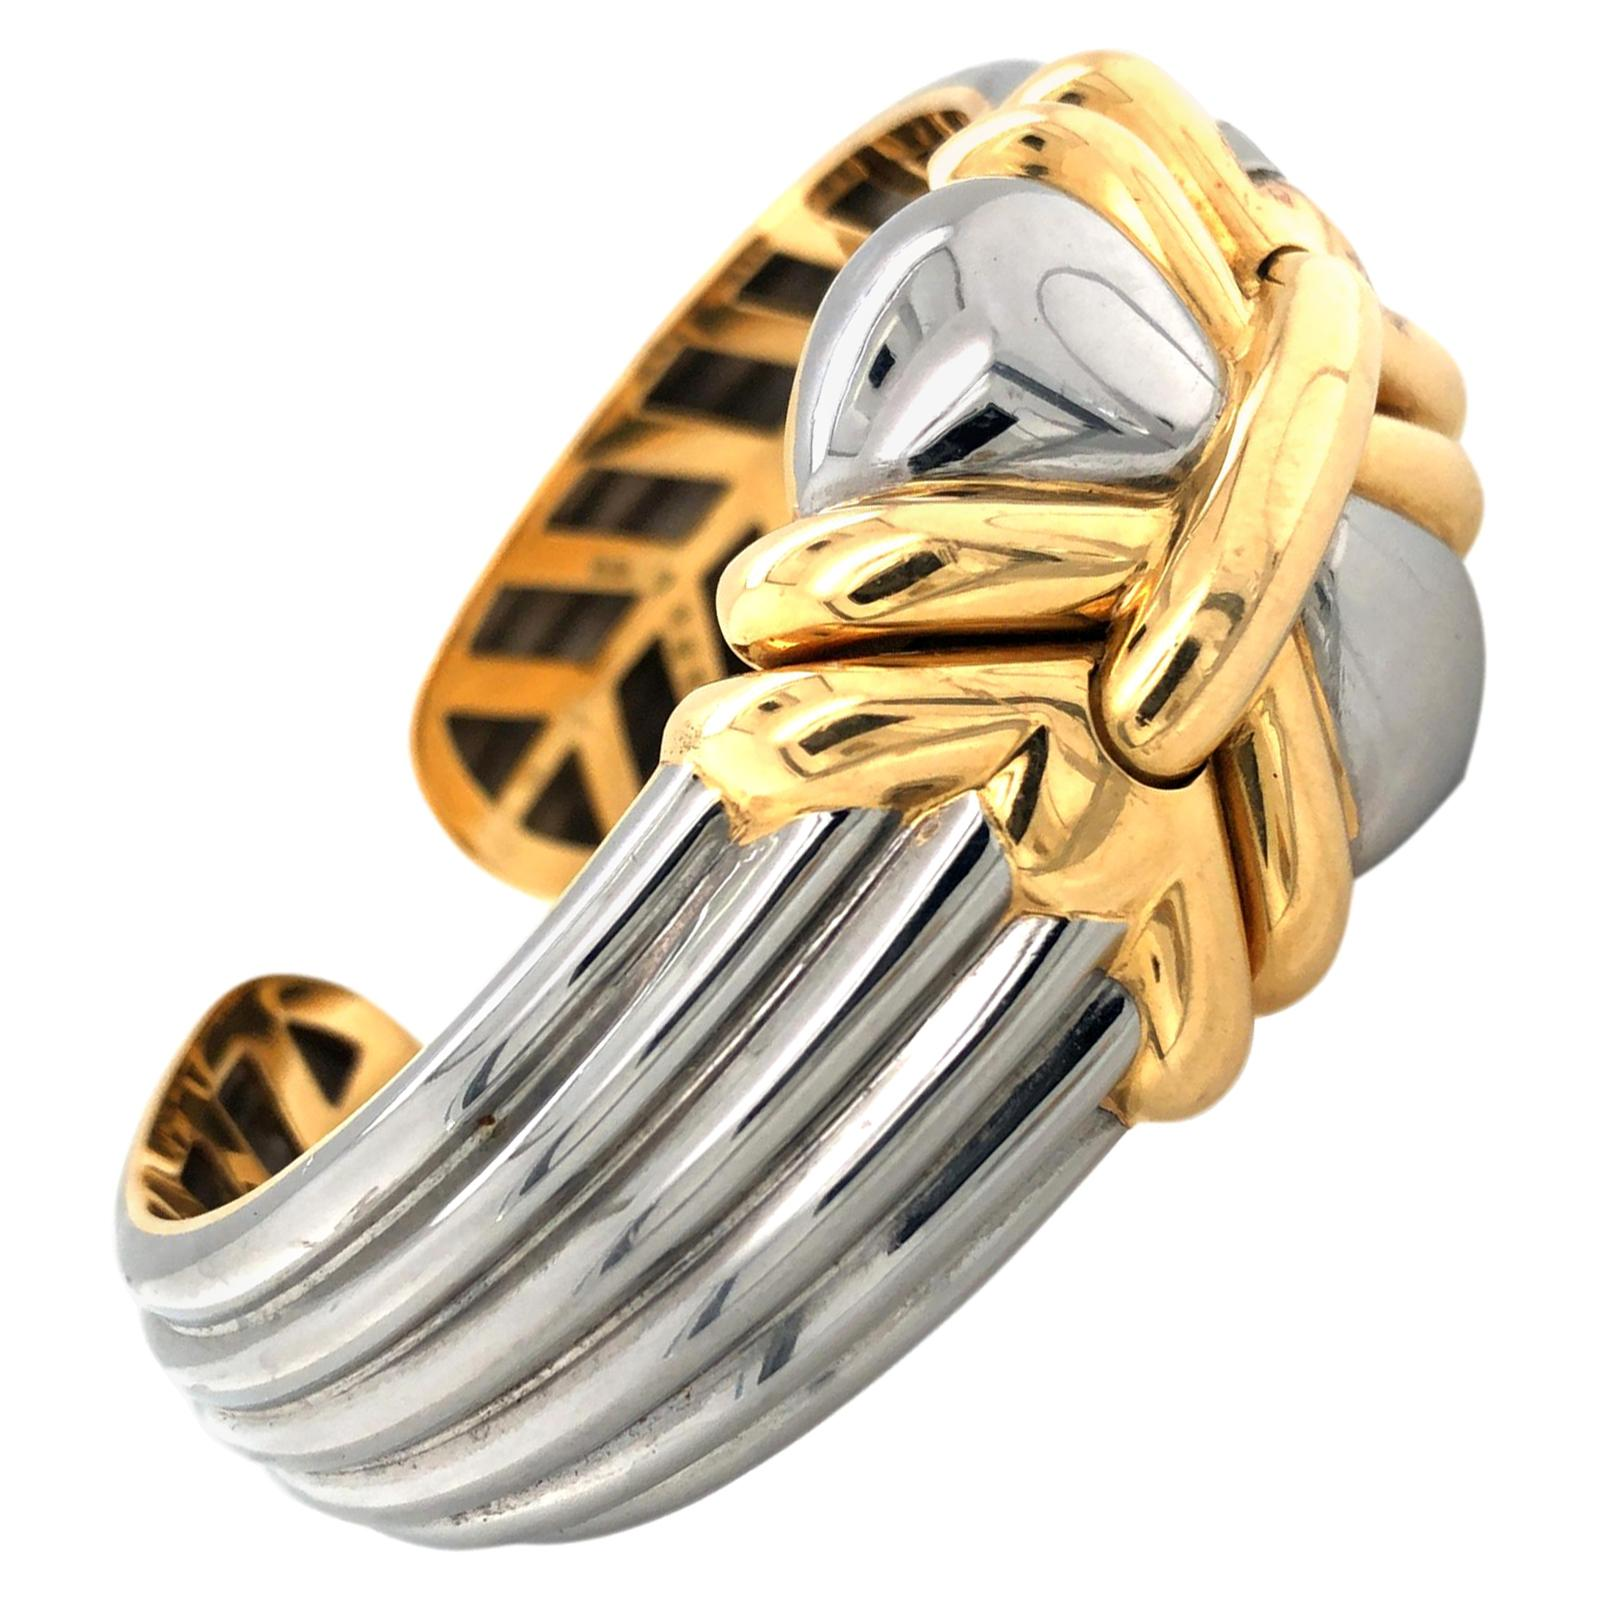 Bvlgari Stainless Steel and Gold Cuff Bracelet